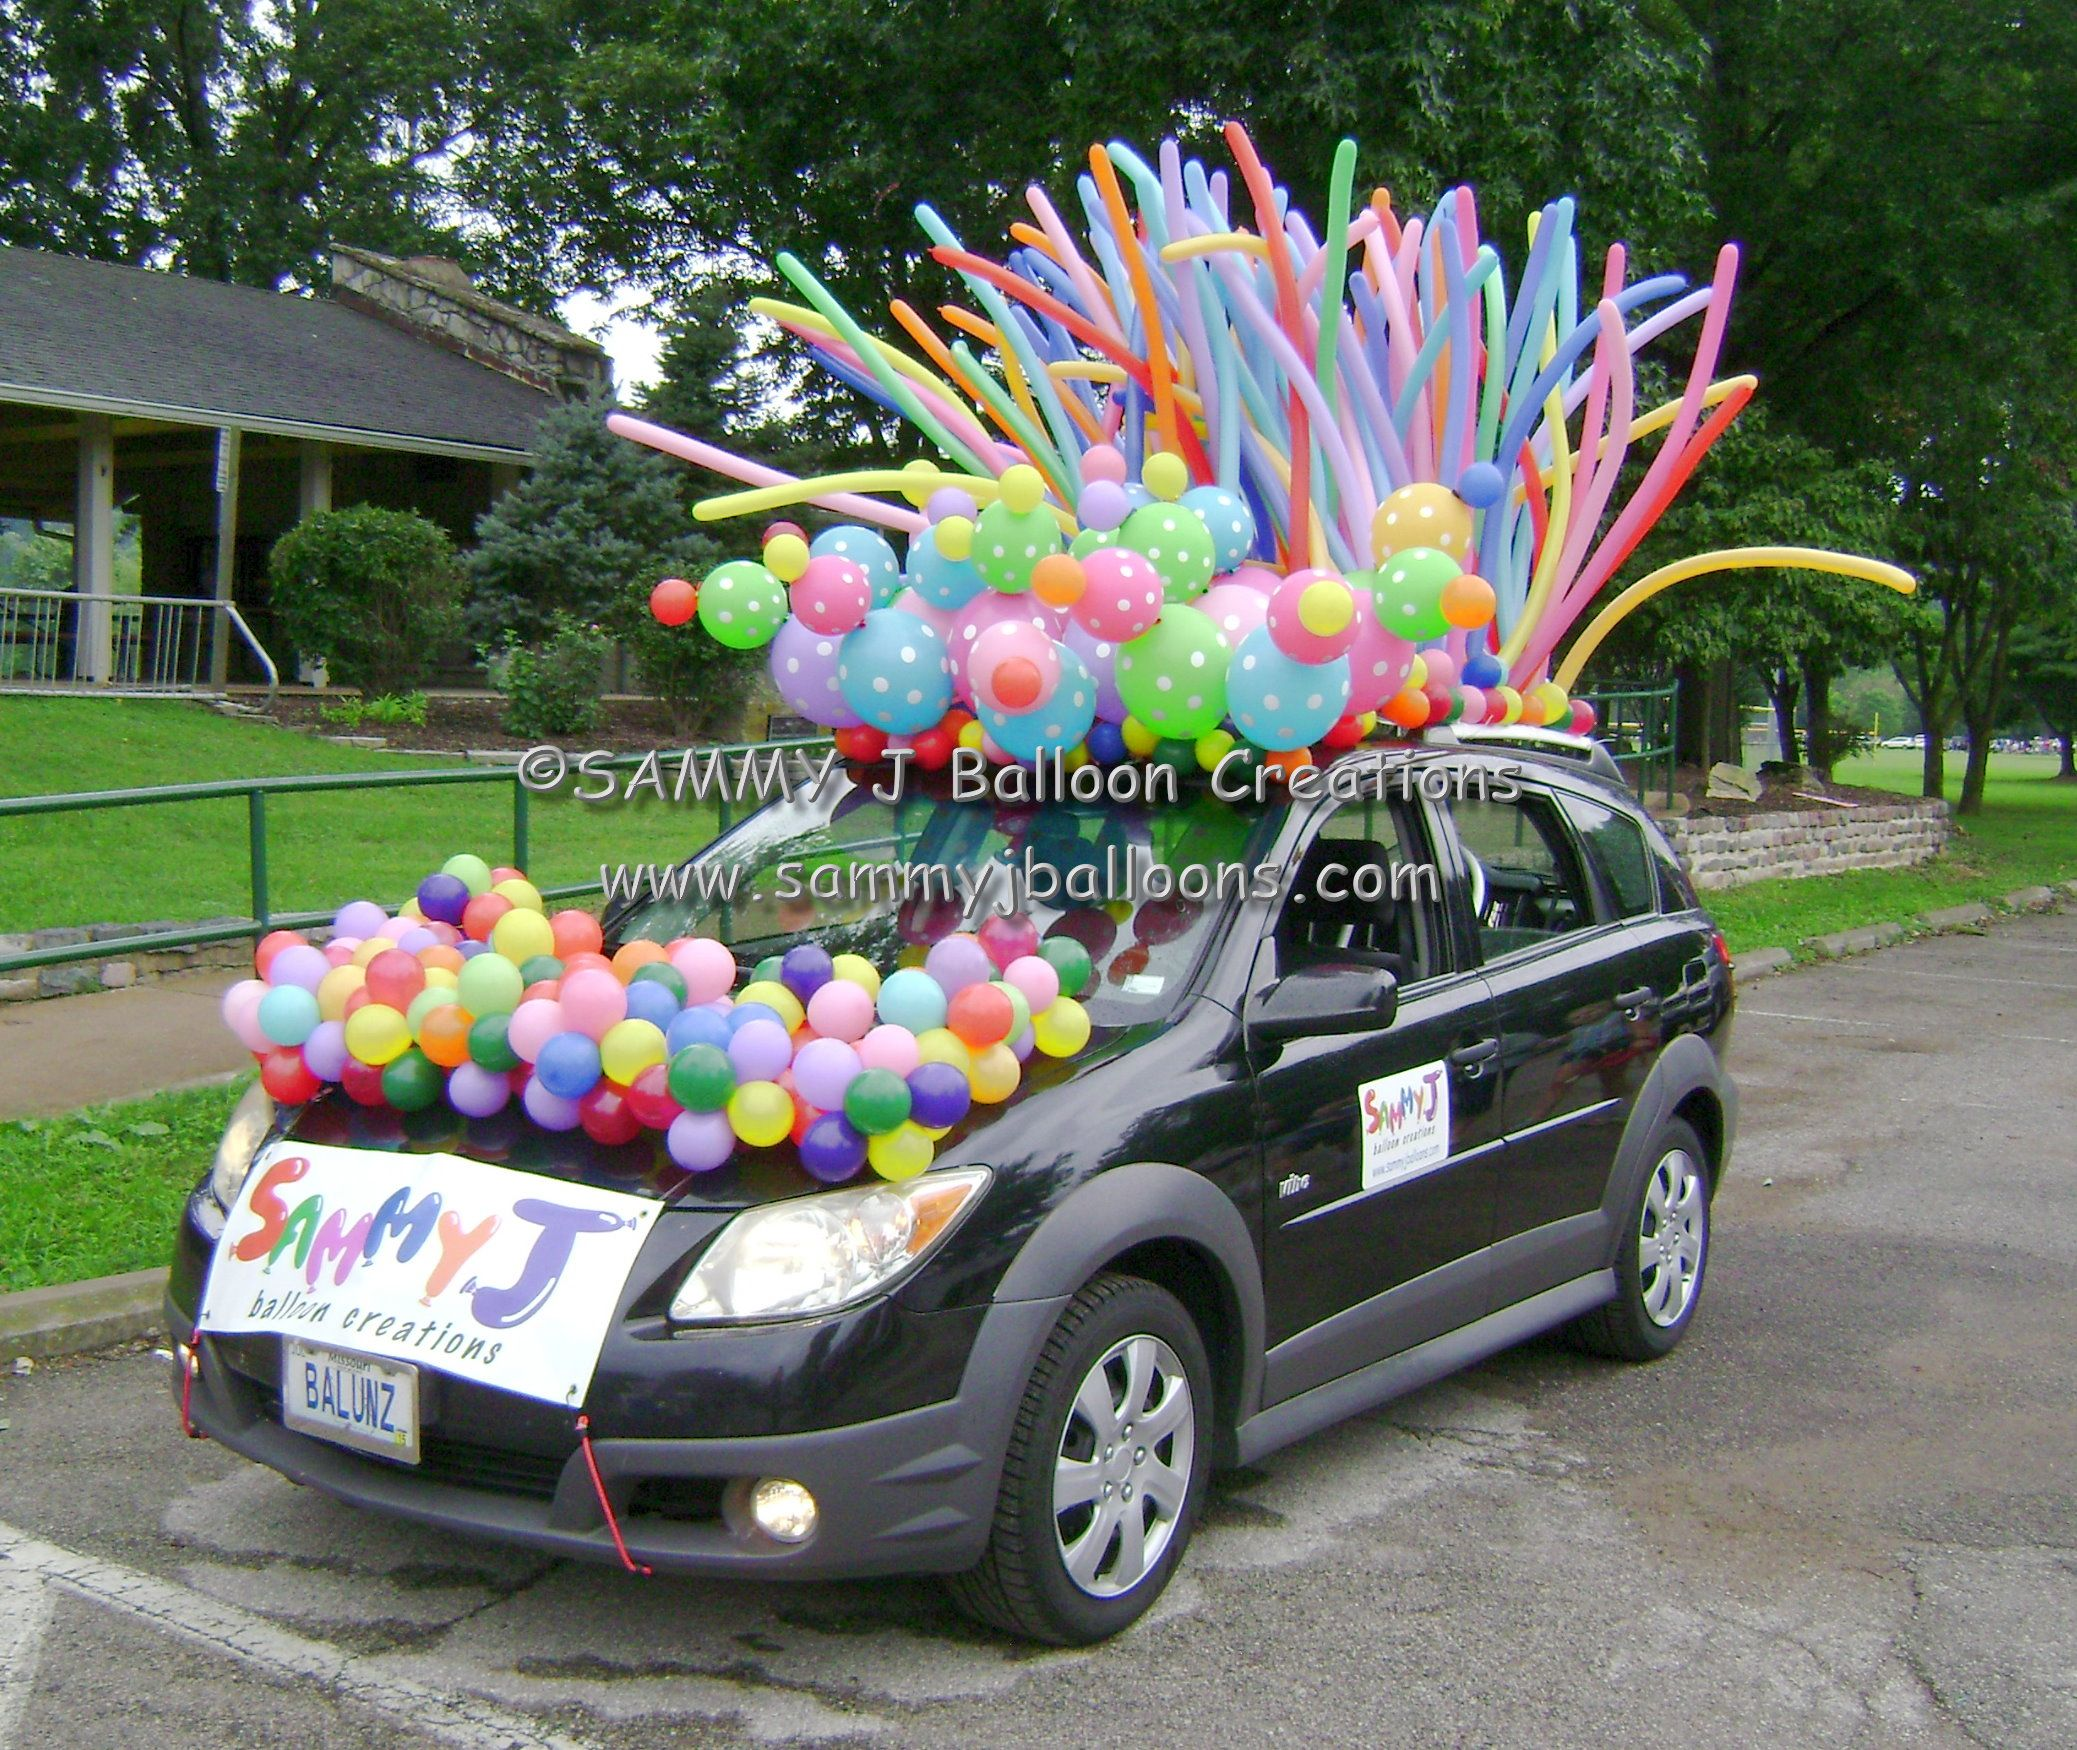 Was invited to decorate my car for a parade. the Polka Dot Link-O-Loons made all the difference. .sammyjballoons.com & Was invited to decorate my car for a parade. the Polka Dot Link-O ...